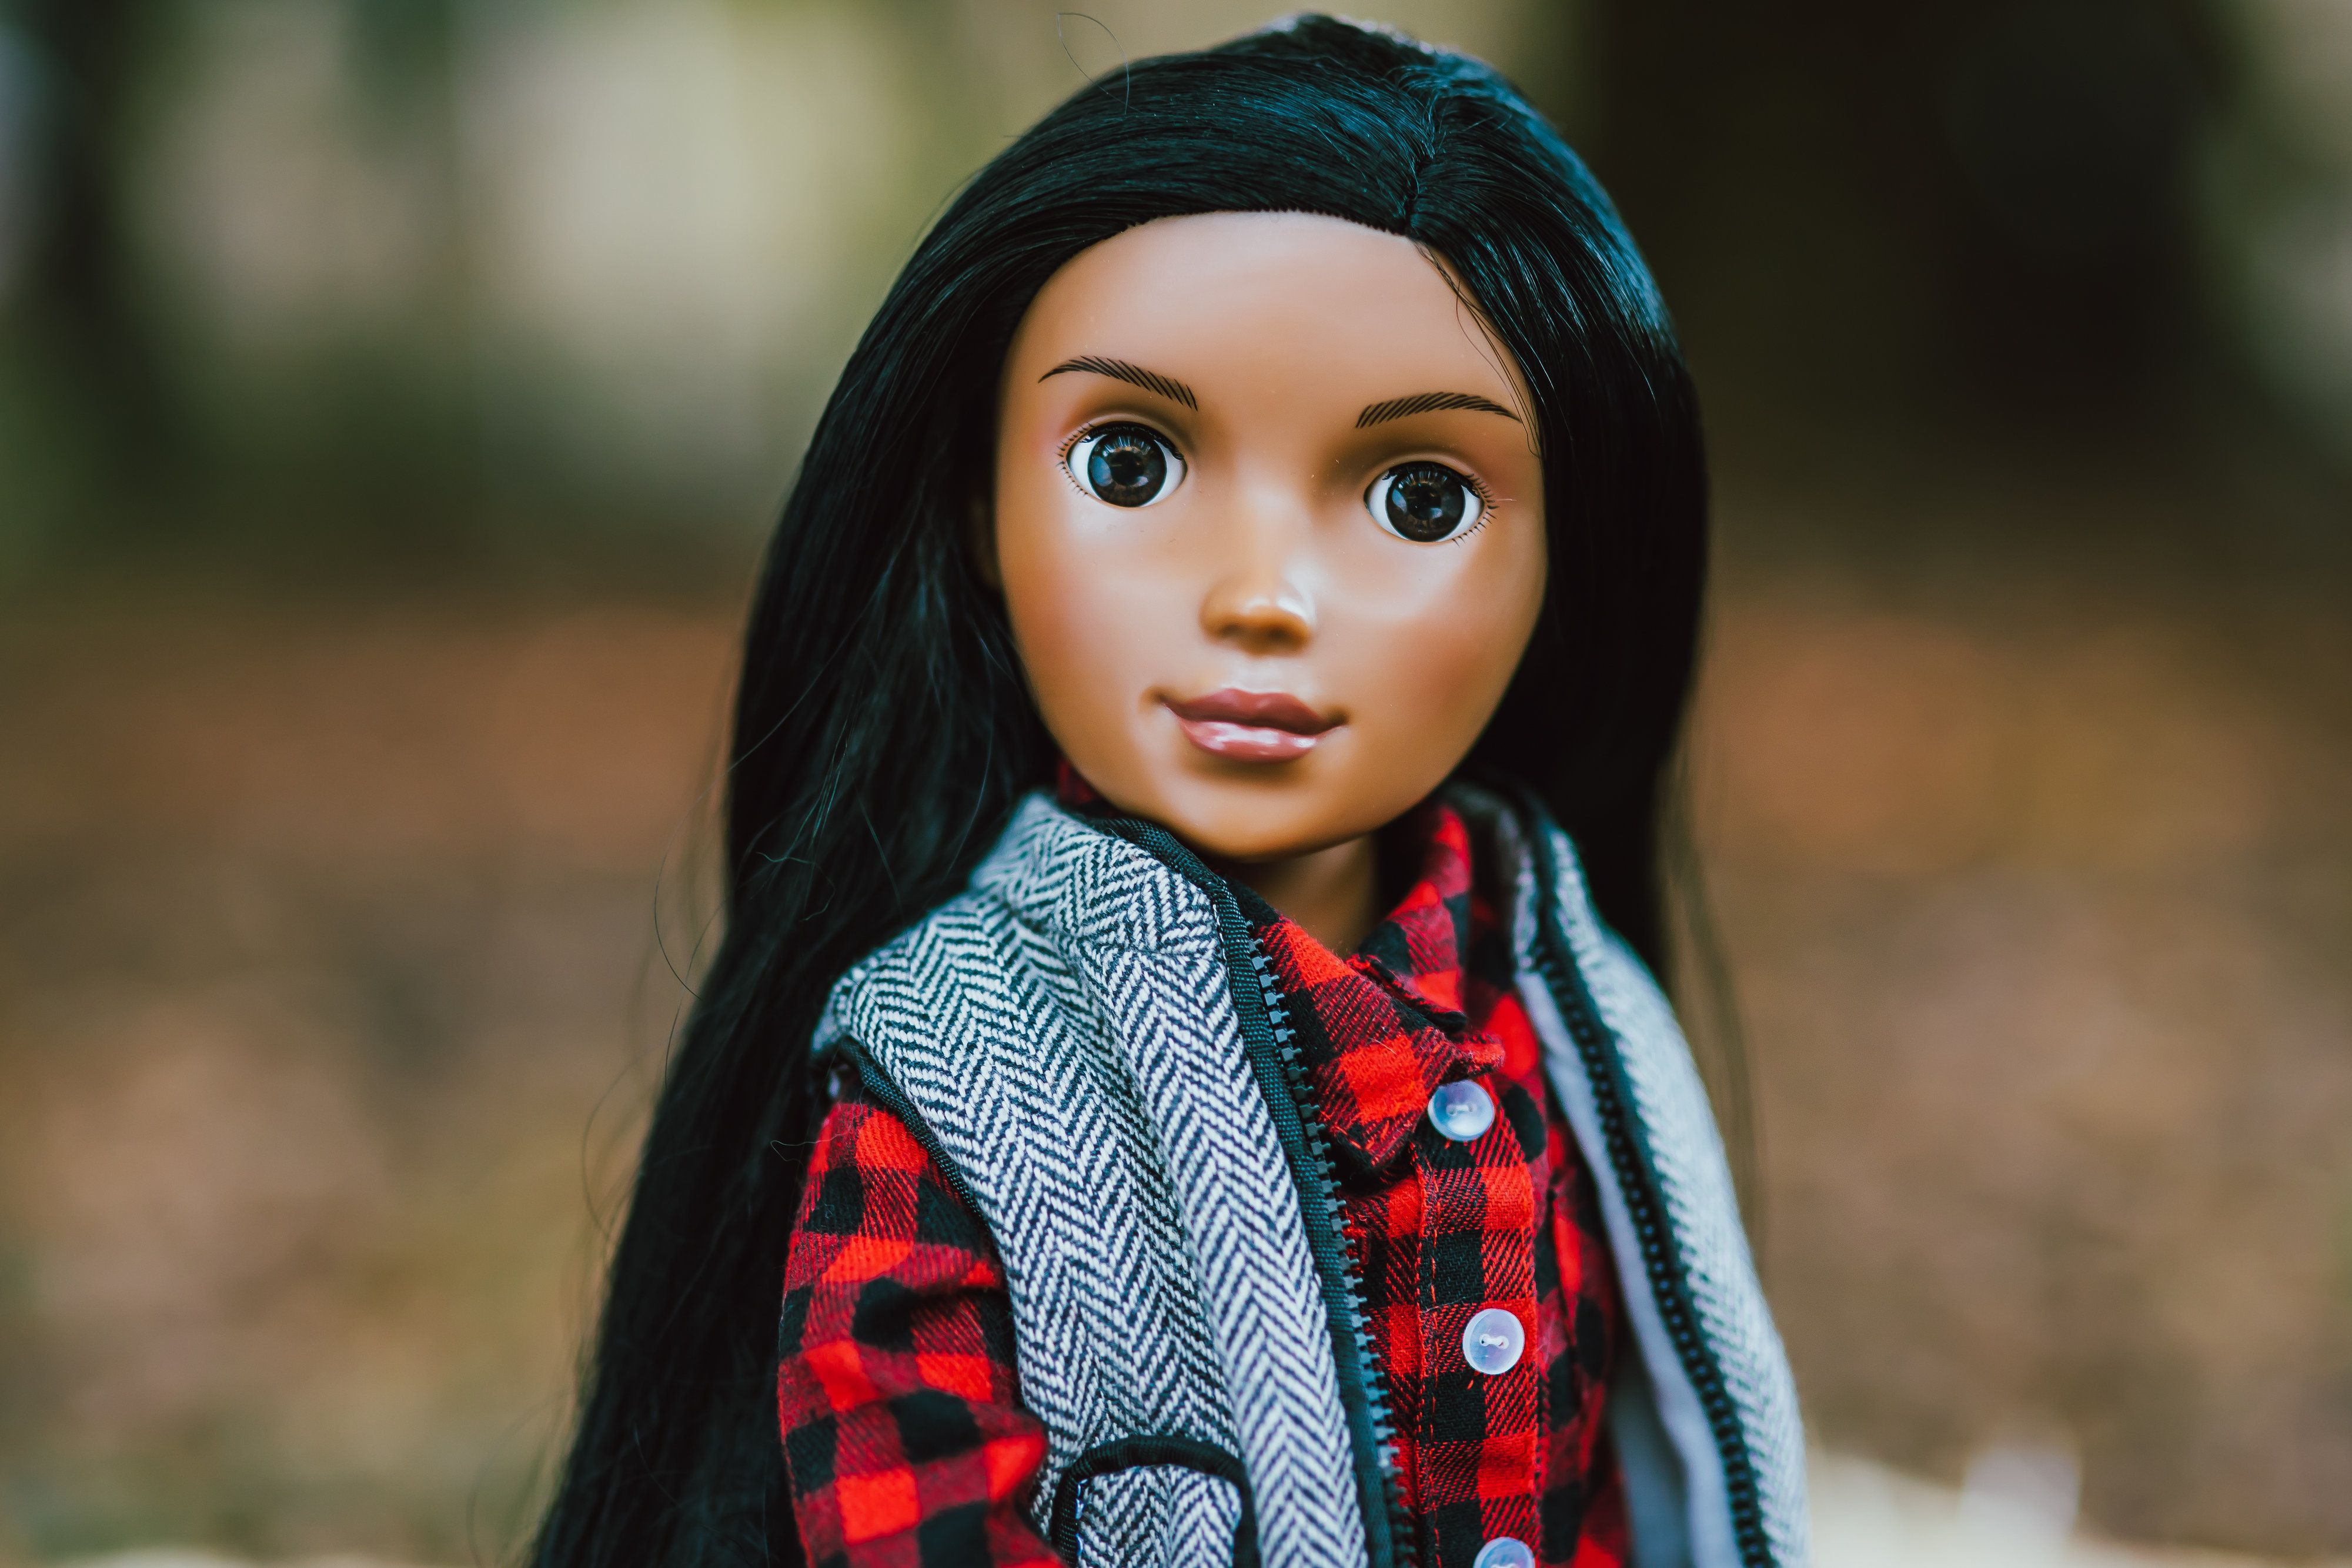 Neha Chauhan Woodward, the woman behind Girls & Co, created an Indian-American doll named Anjali....